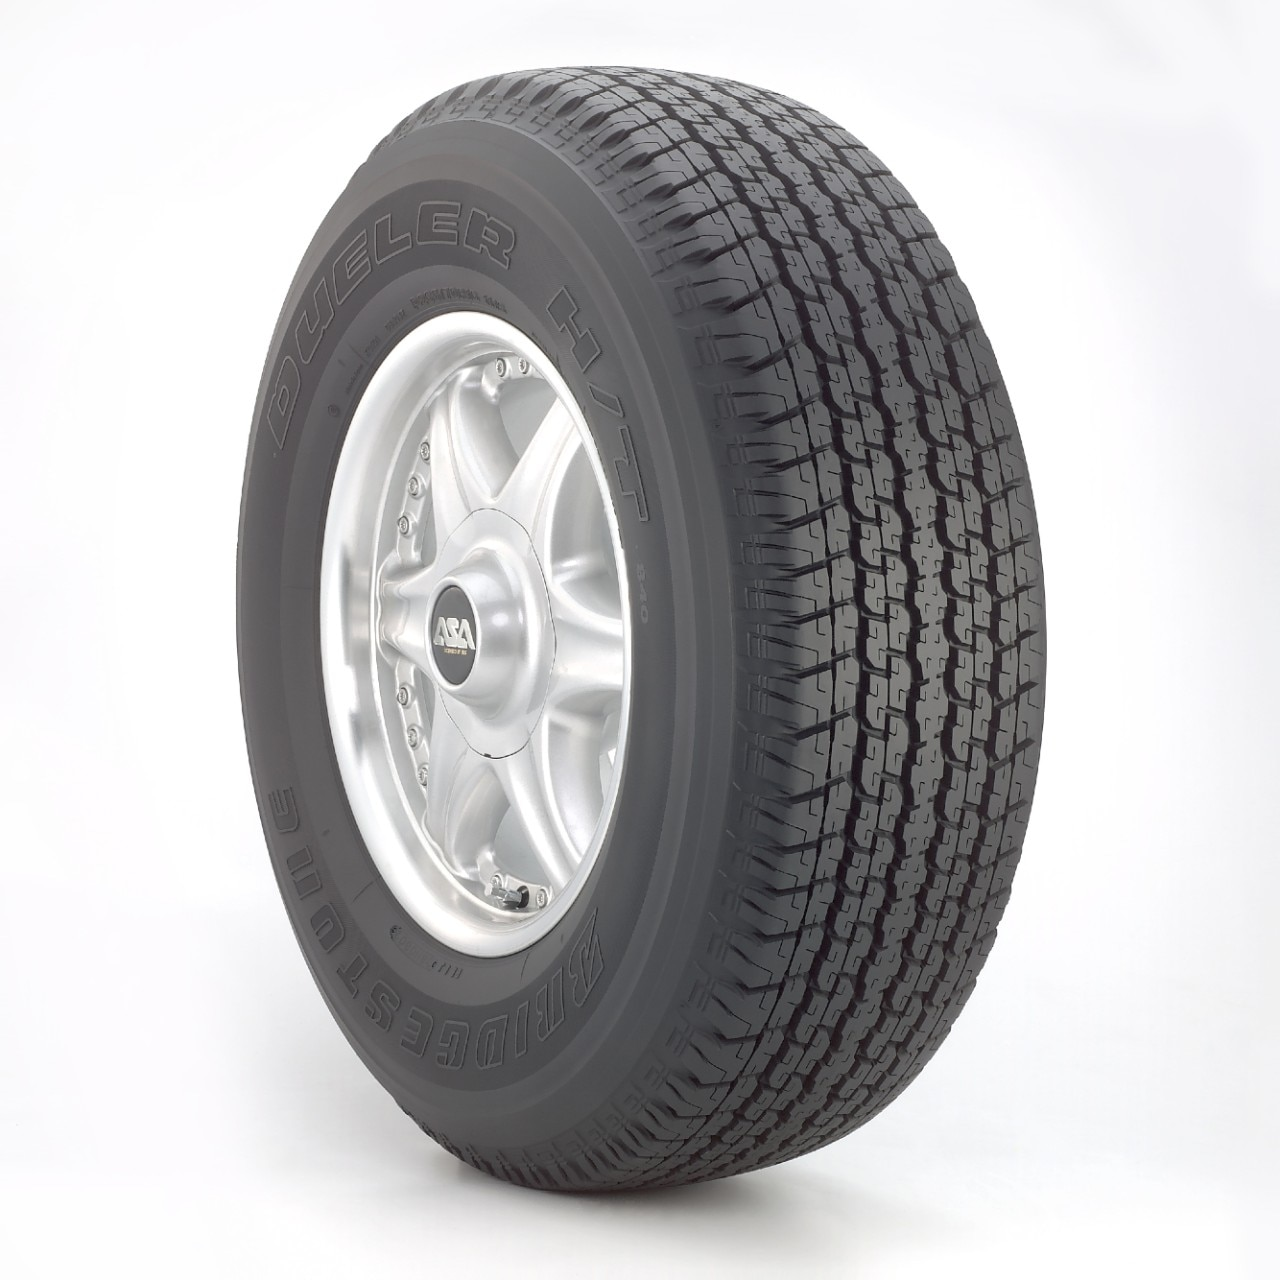 p range by to tire load loadstar lighting categories tires lbs rated light e trailer home truck